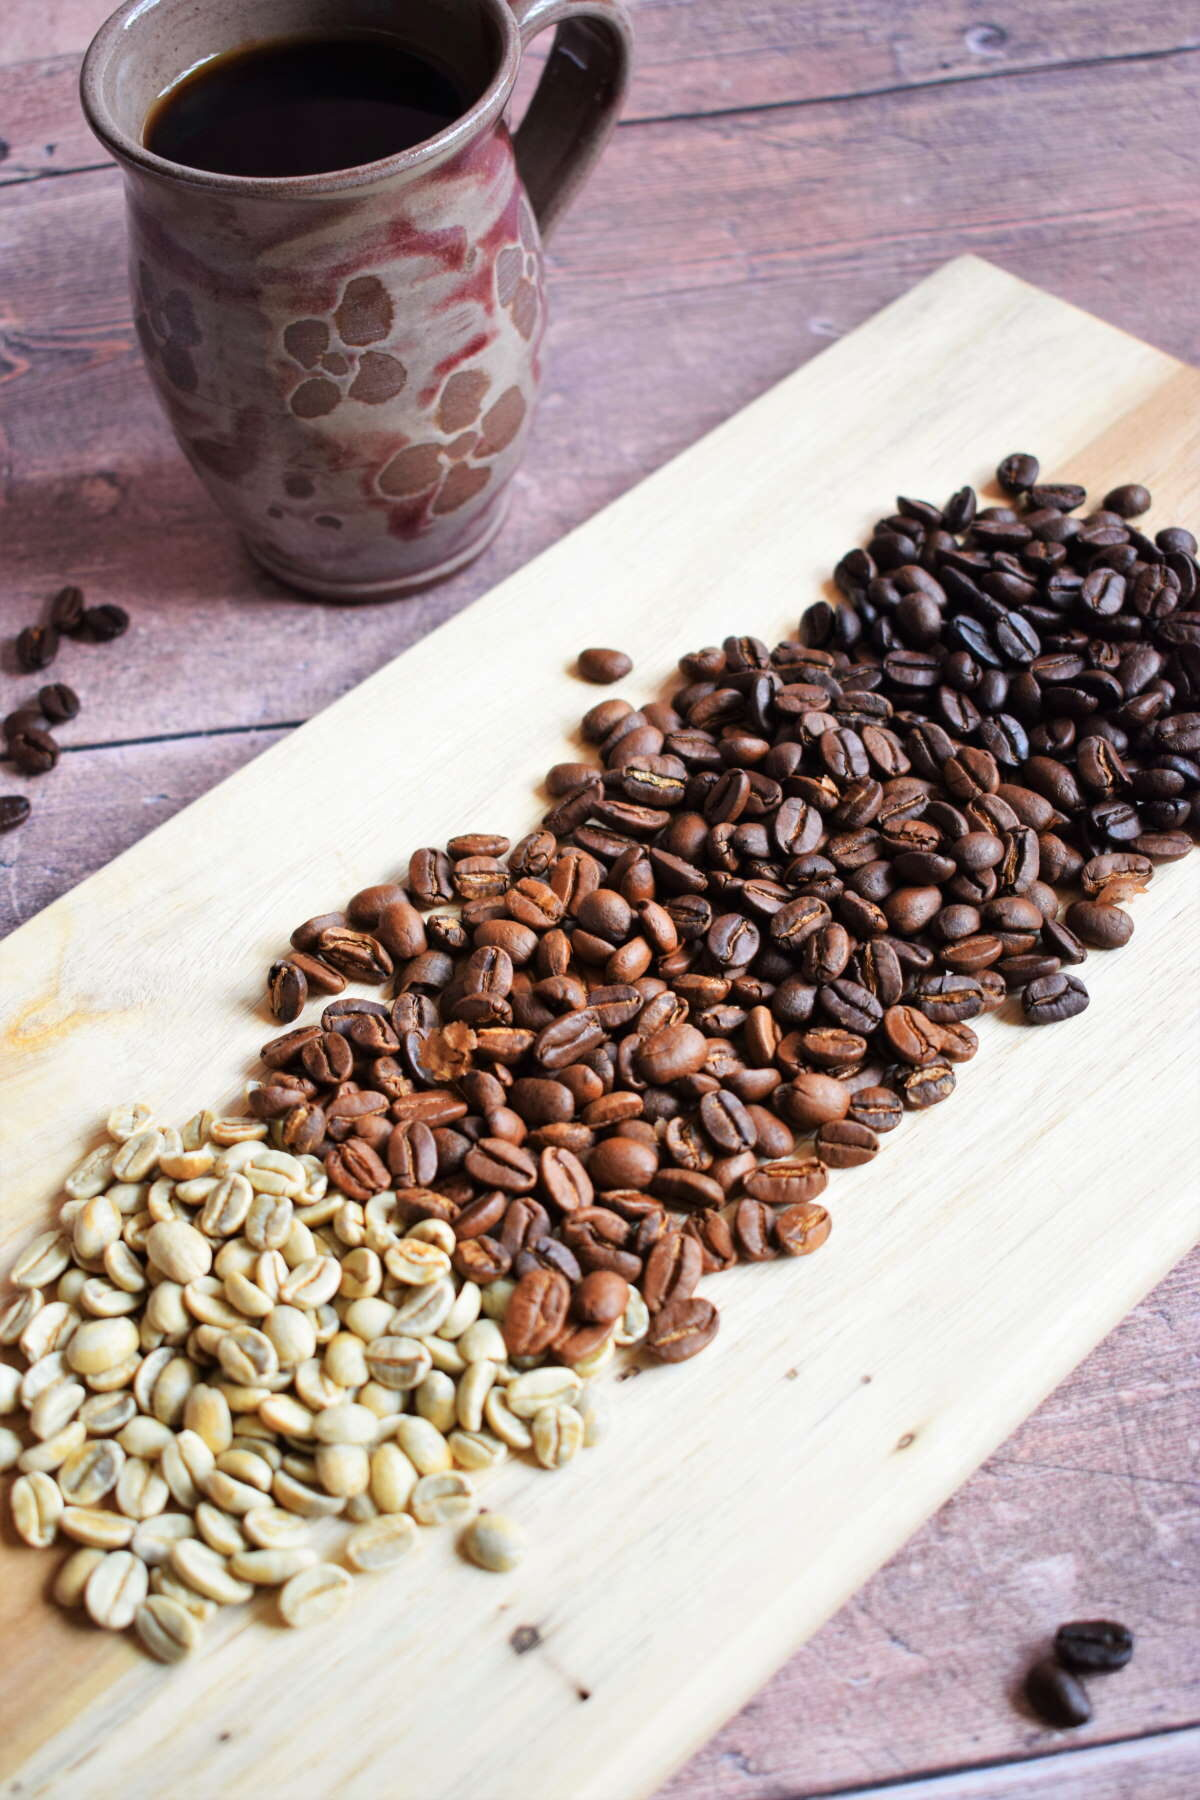 Green and brown coffee beans on wooden serving board, coffee mug in the background.